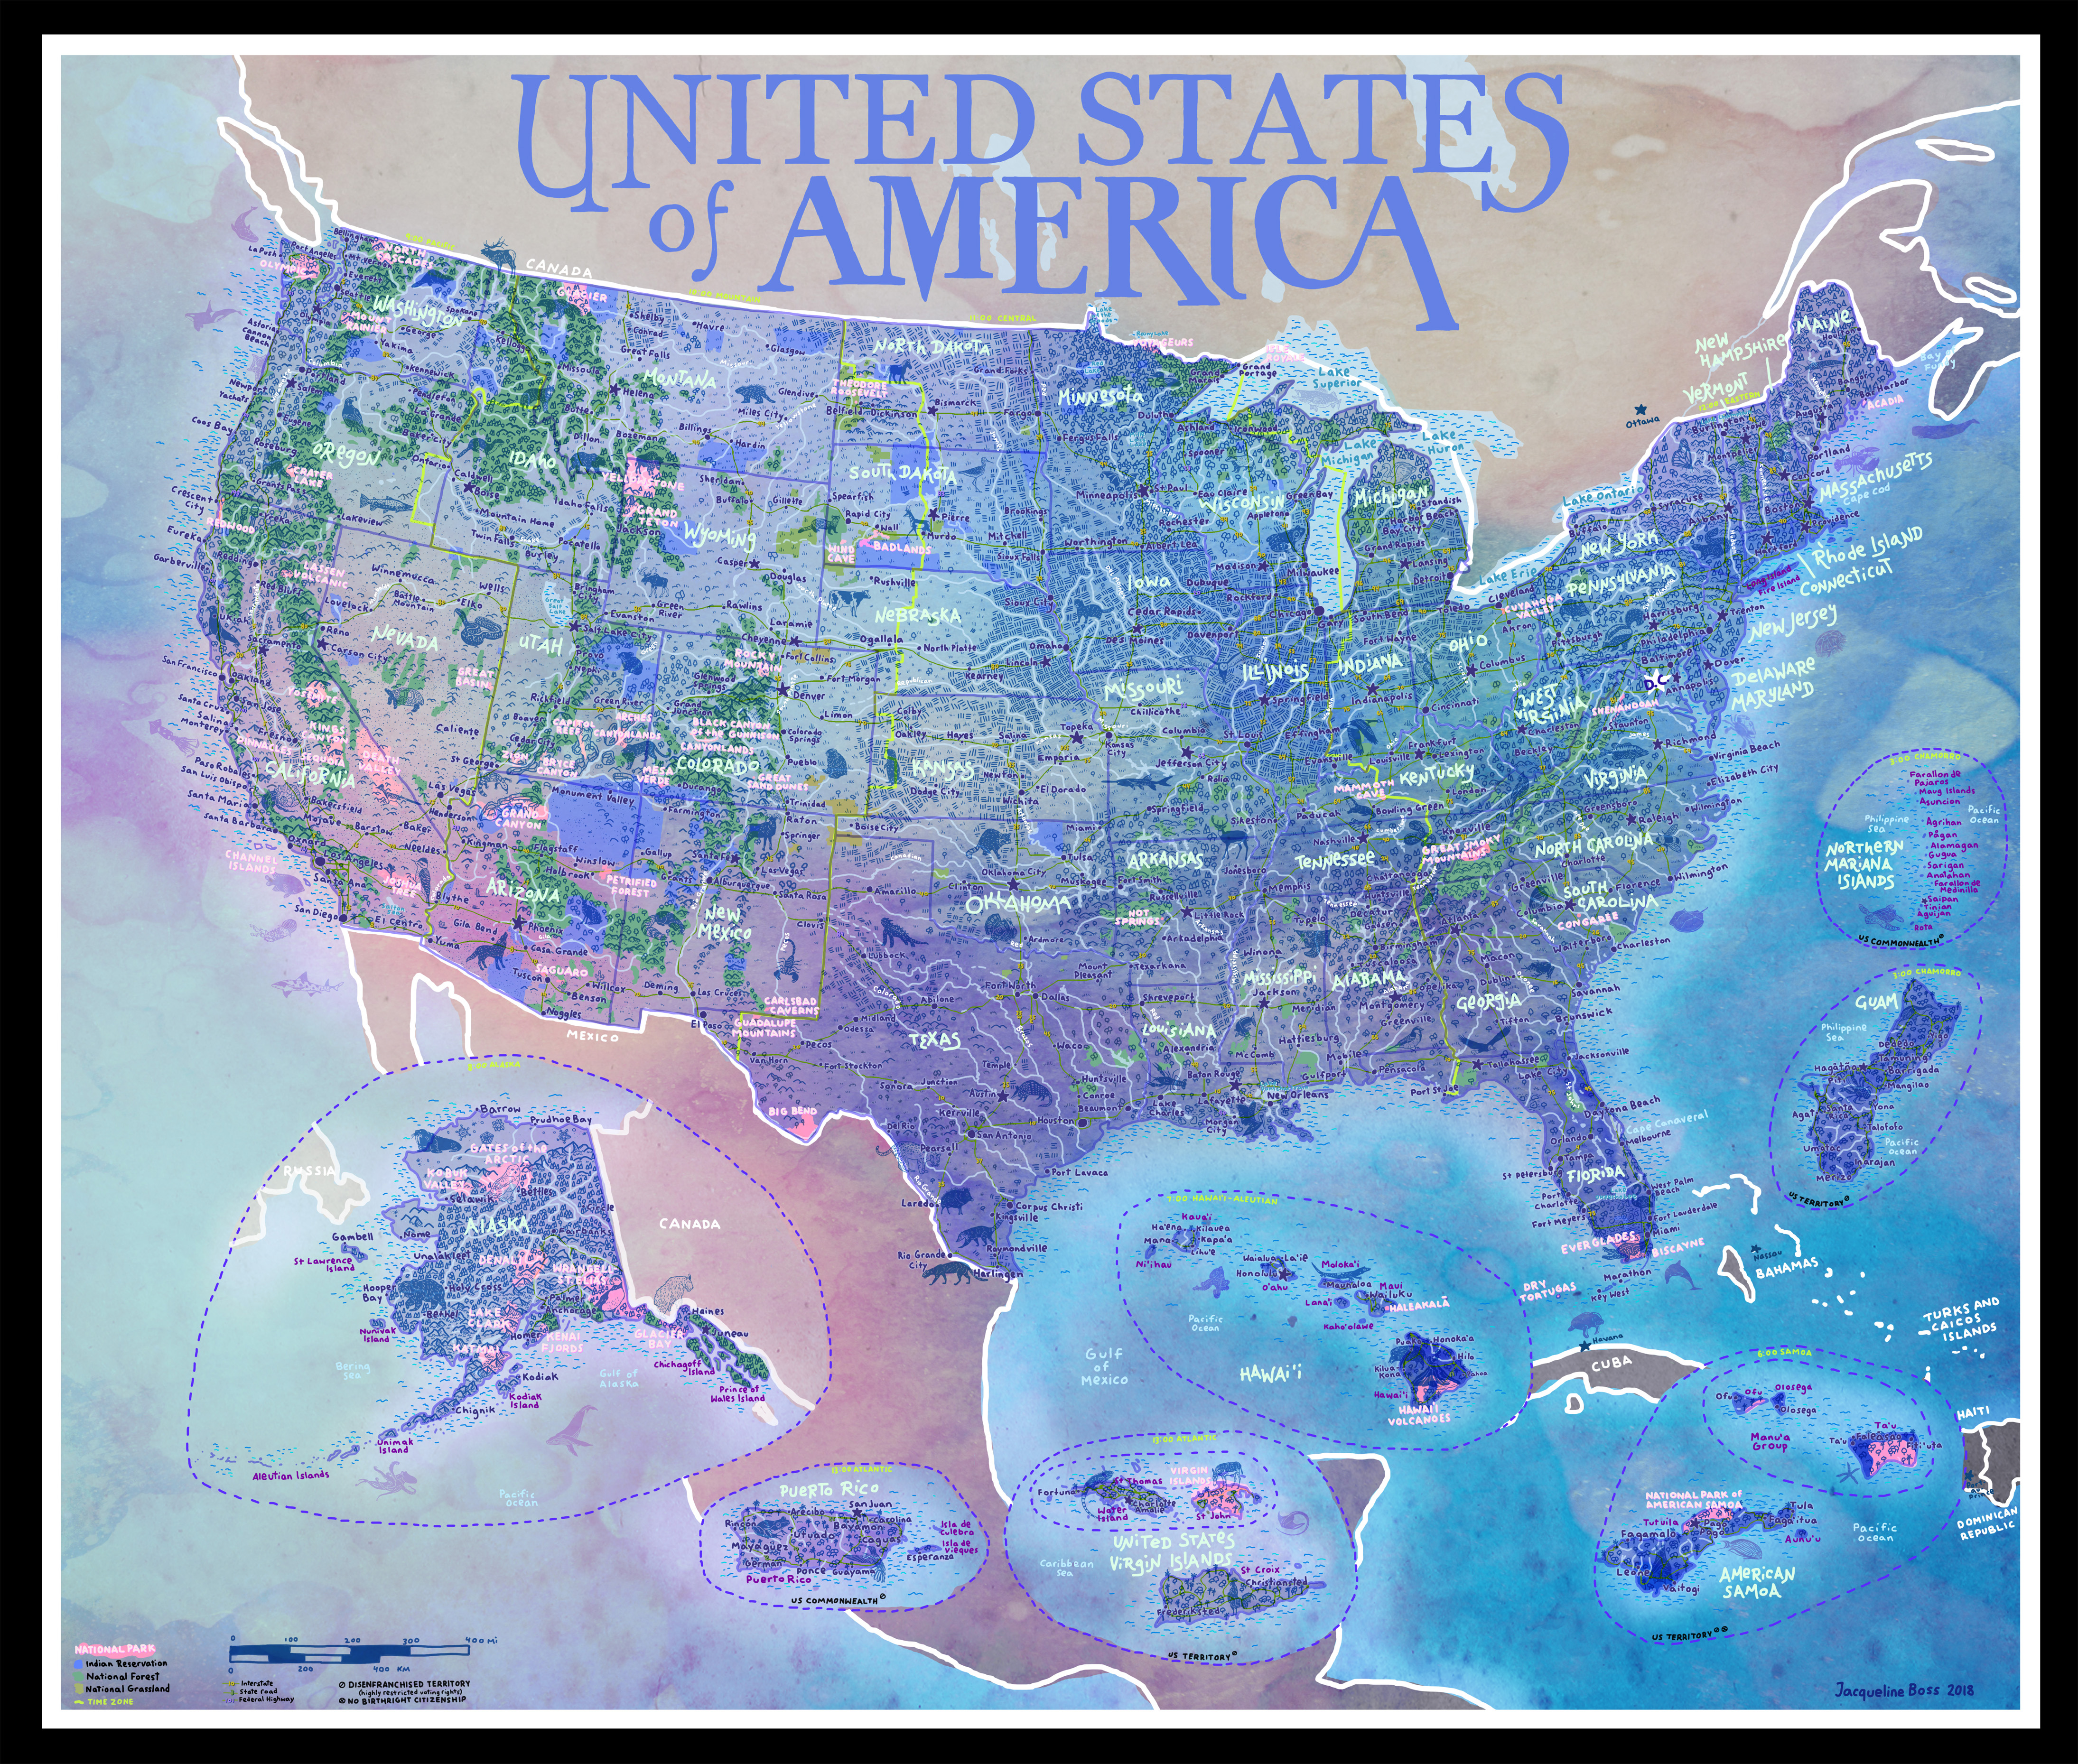 US National Parks Adventure Map Highlights America\'s ...